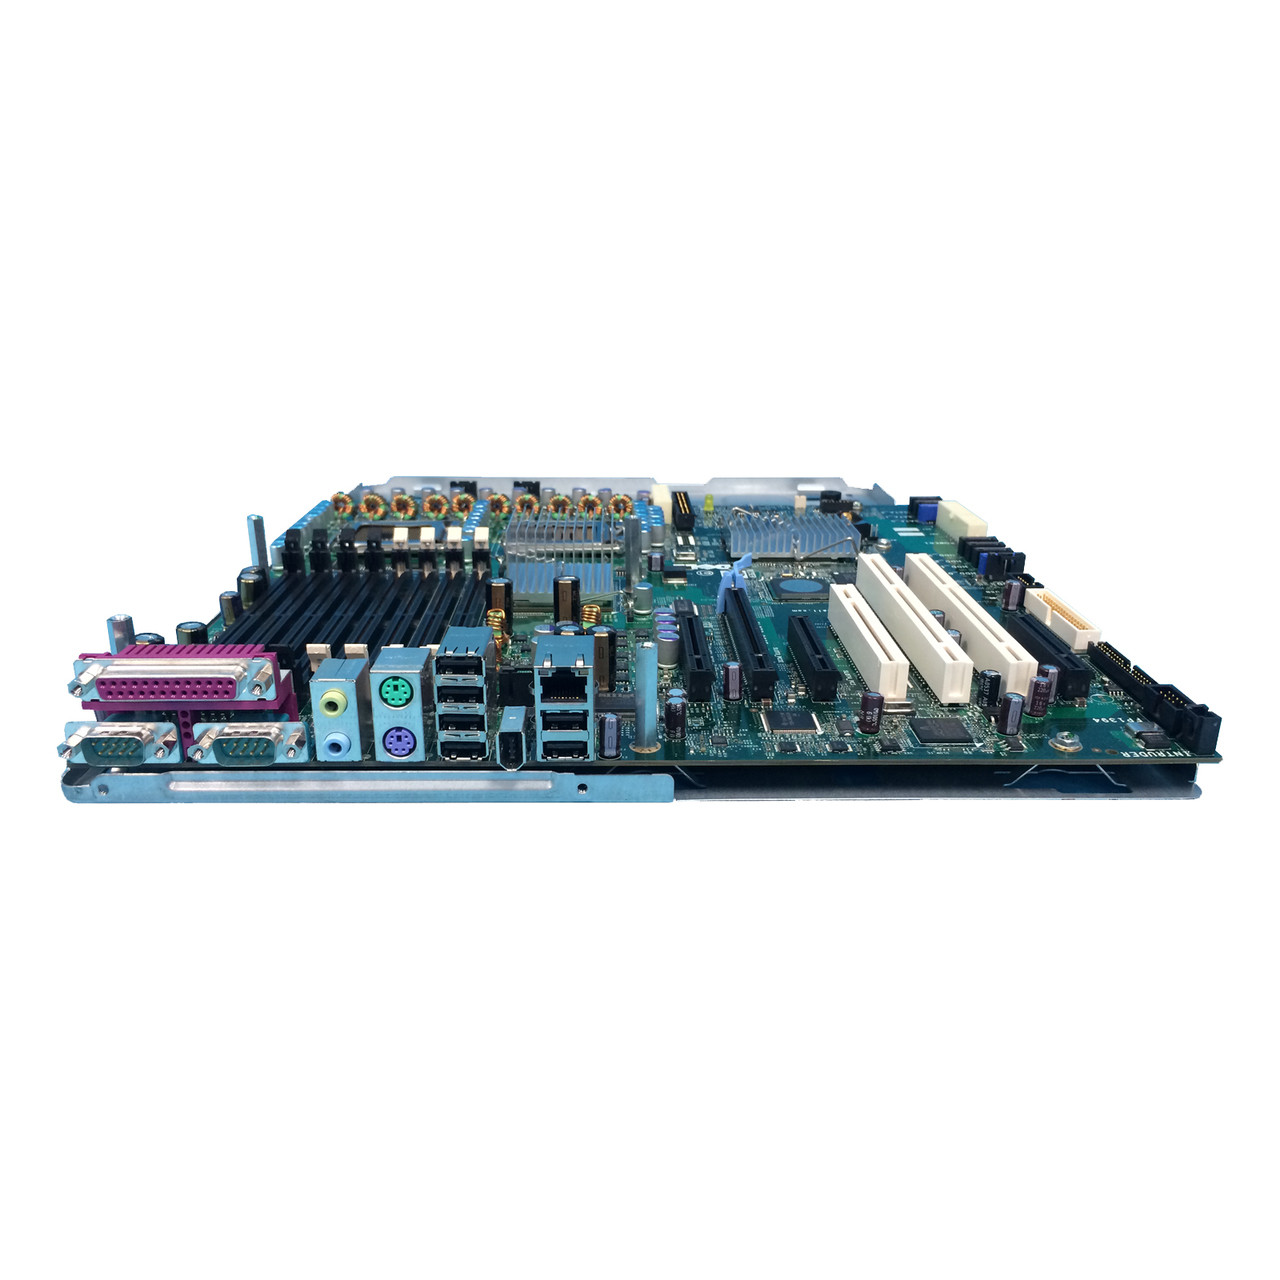 dell my171 precision 690 system board precision 690 motherboard dell laptop power supply pinout wiring diagram for dell 690 power supply [ 1280 x 1280 Pixel ]